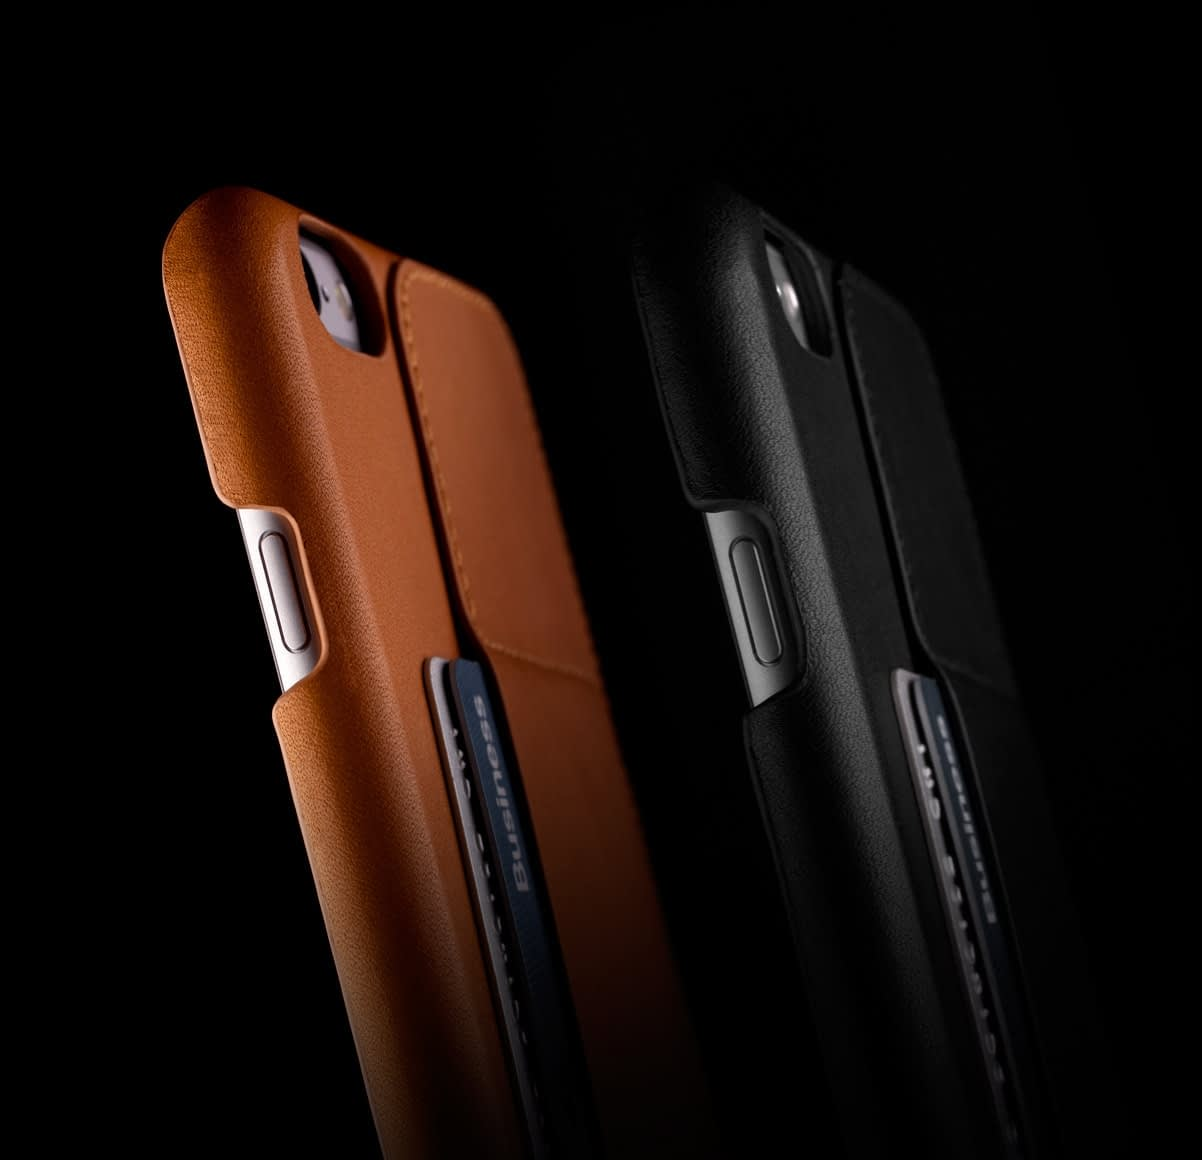 Leather Wallet Case 80° for iPhone 6 Plus Tan and Black